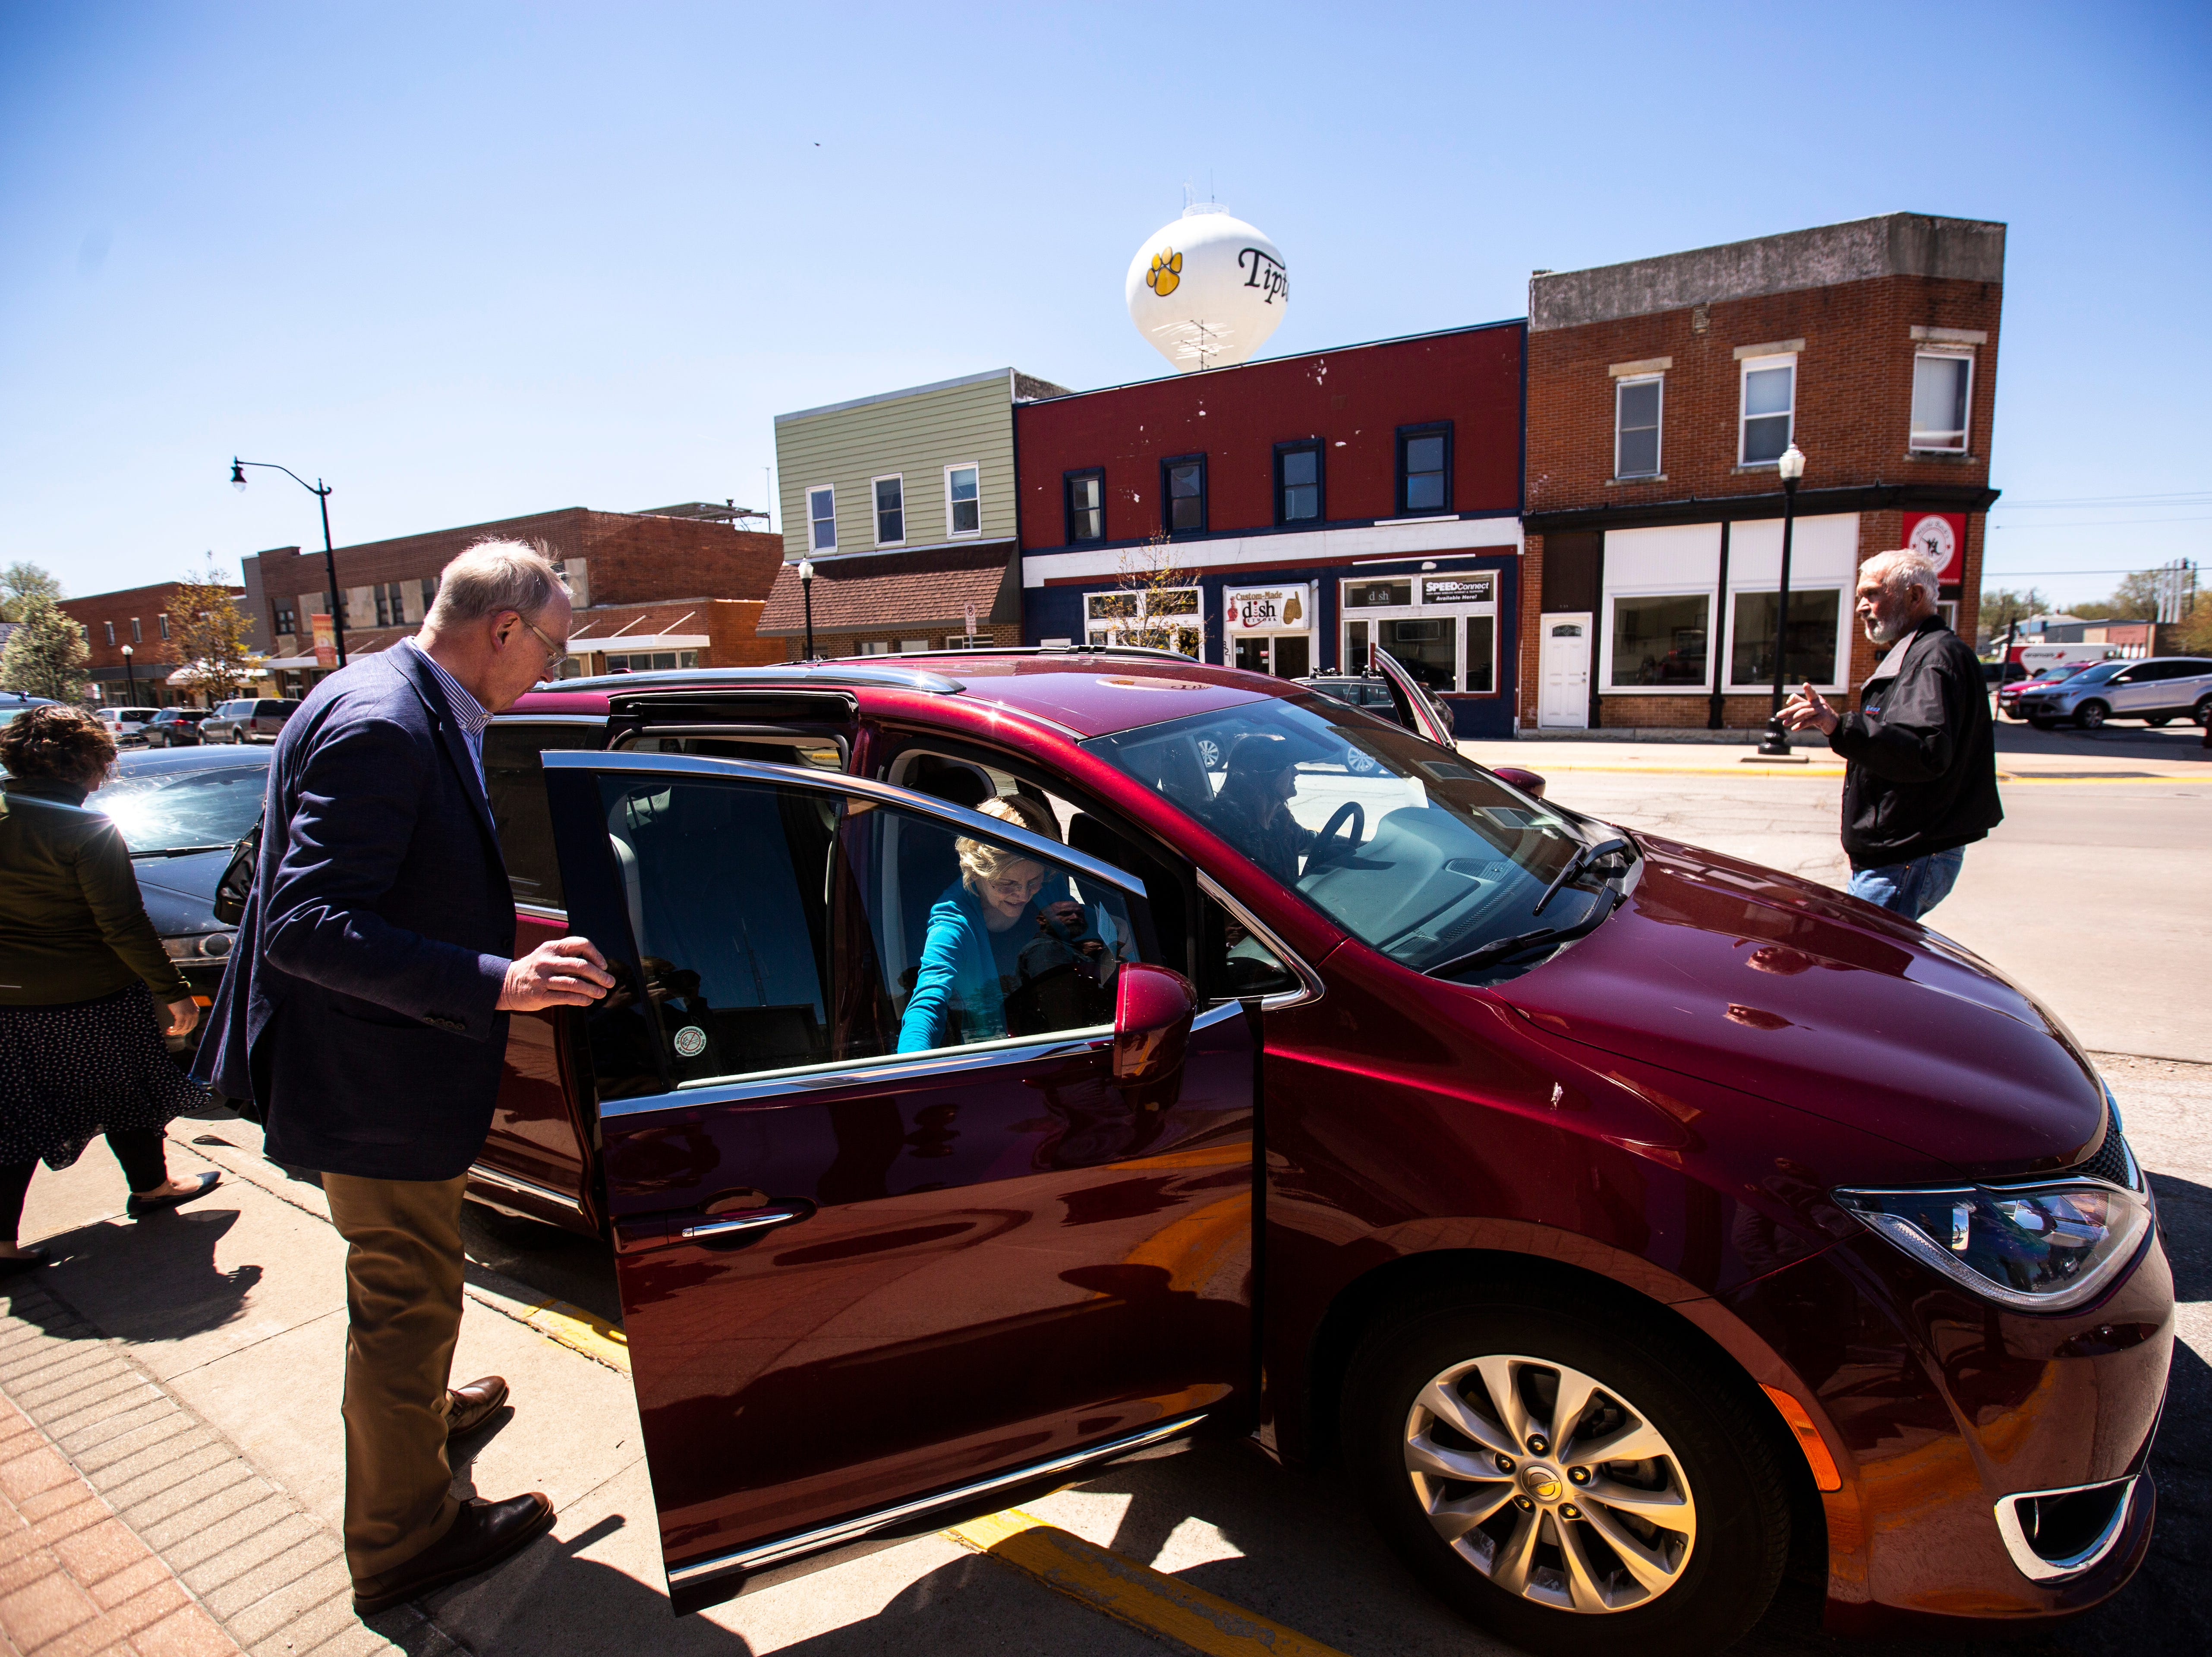 Bruce H. Mann, the husband of U.S. Sen. Elizabeth Warren, D-Mass., holds the door open for her to the passenger seat of a red Chrysler minivan after she spoke at a campaign event, Friday, April 26, 2019, at the Tipton Family Restaurant in Tipton, Iowa.